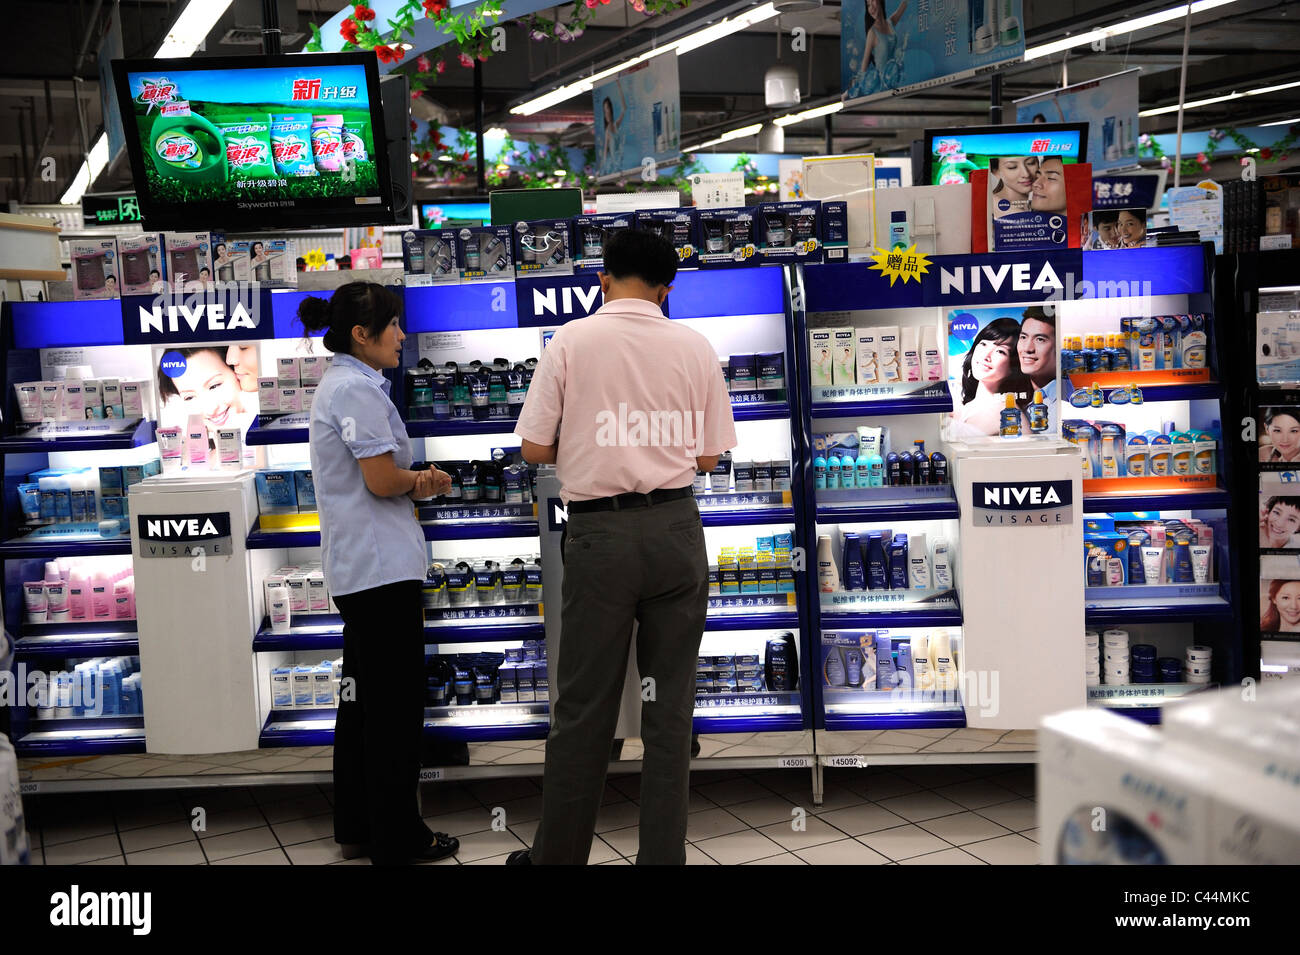 NIVEA, a global skin- and body-care brand, in a Wu Mart supermarket in Beijing, China. 02-Jun-2011 - Stock Image